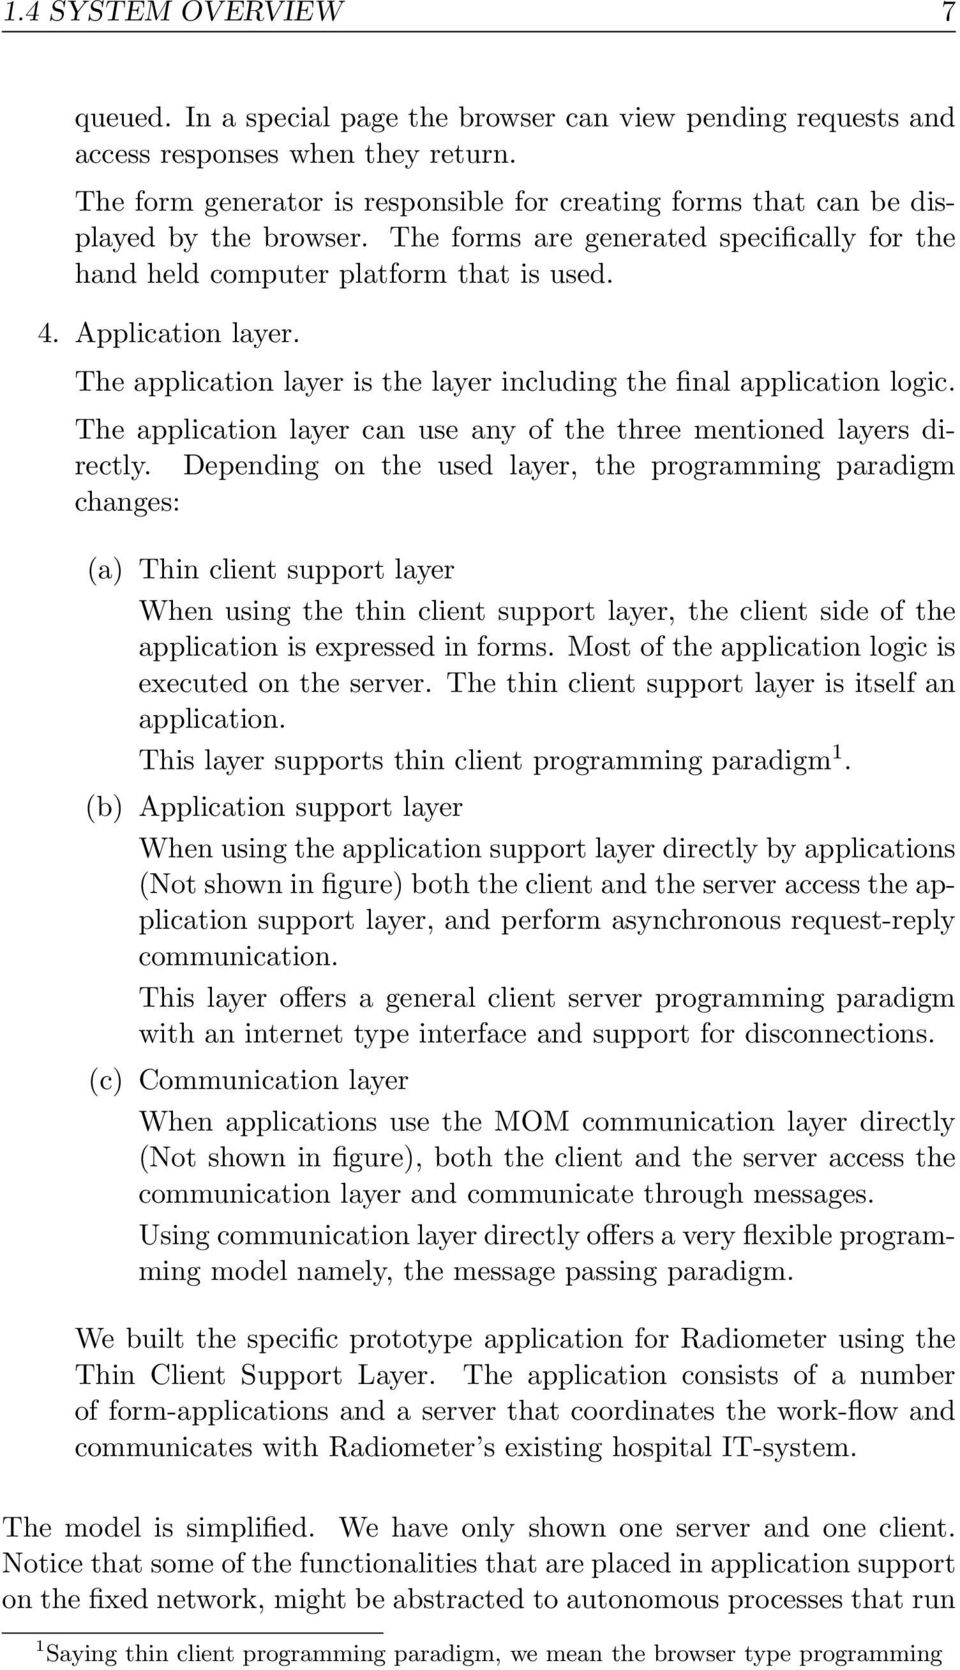 The application layer is the layer including the final application logic. The application layer can use any of the three mentioned layers directly.